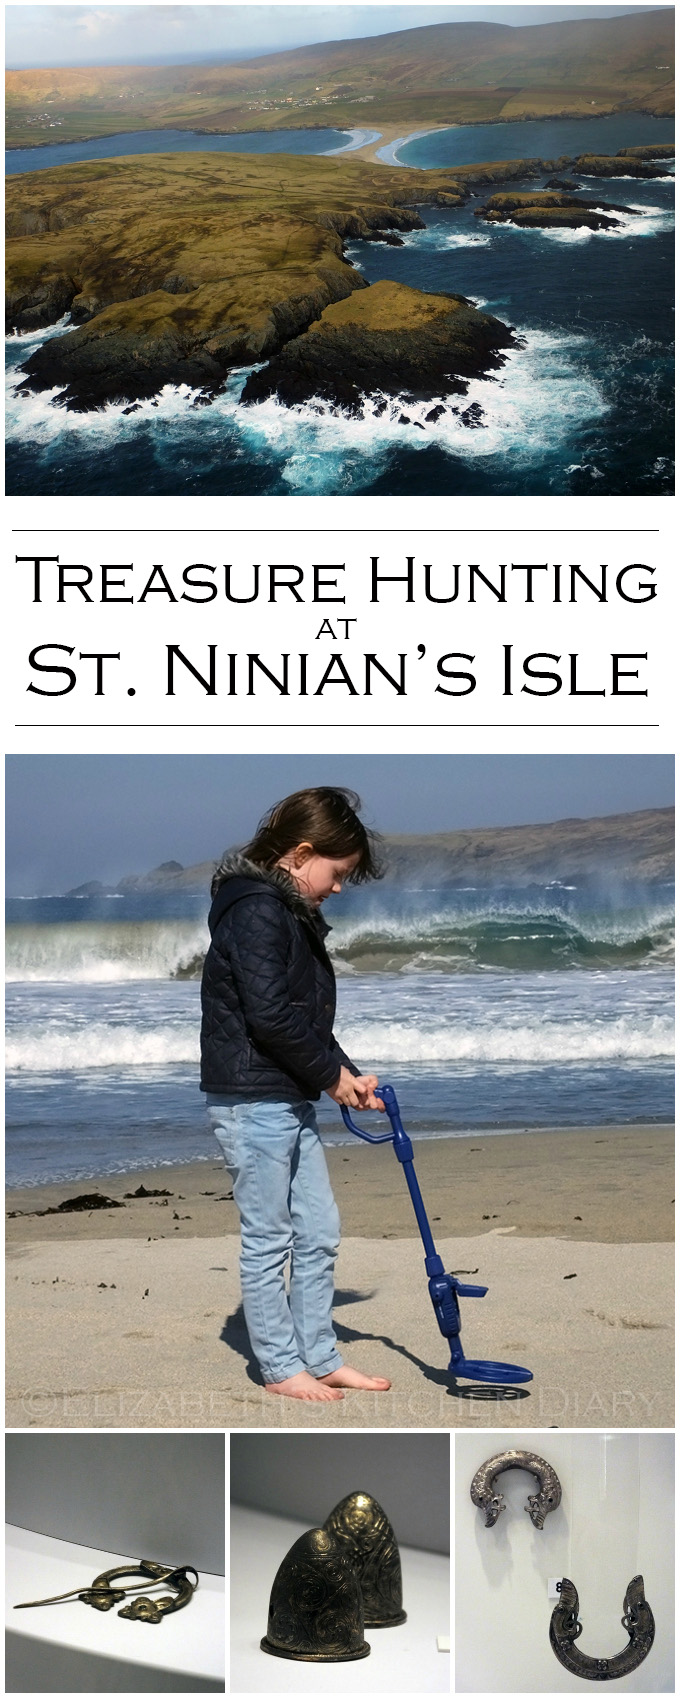 Treasure Hunting at St. Ninian's Isle